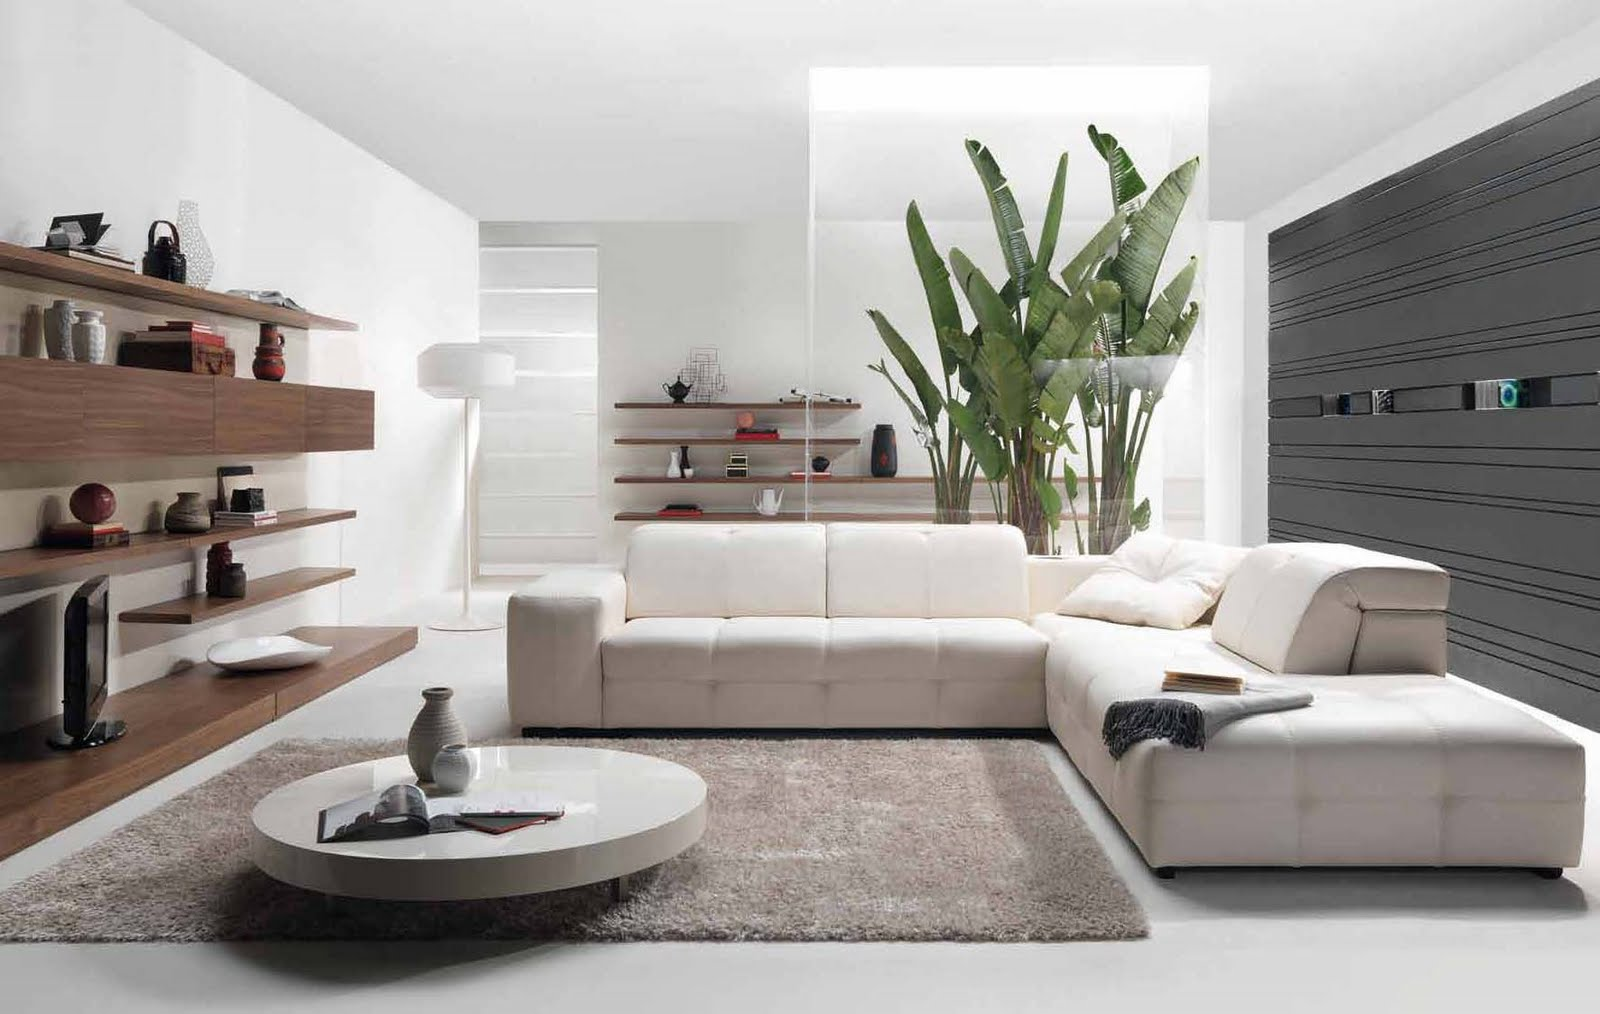 Modern Home Interior & Furniture Designs & DIY Ideas